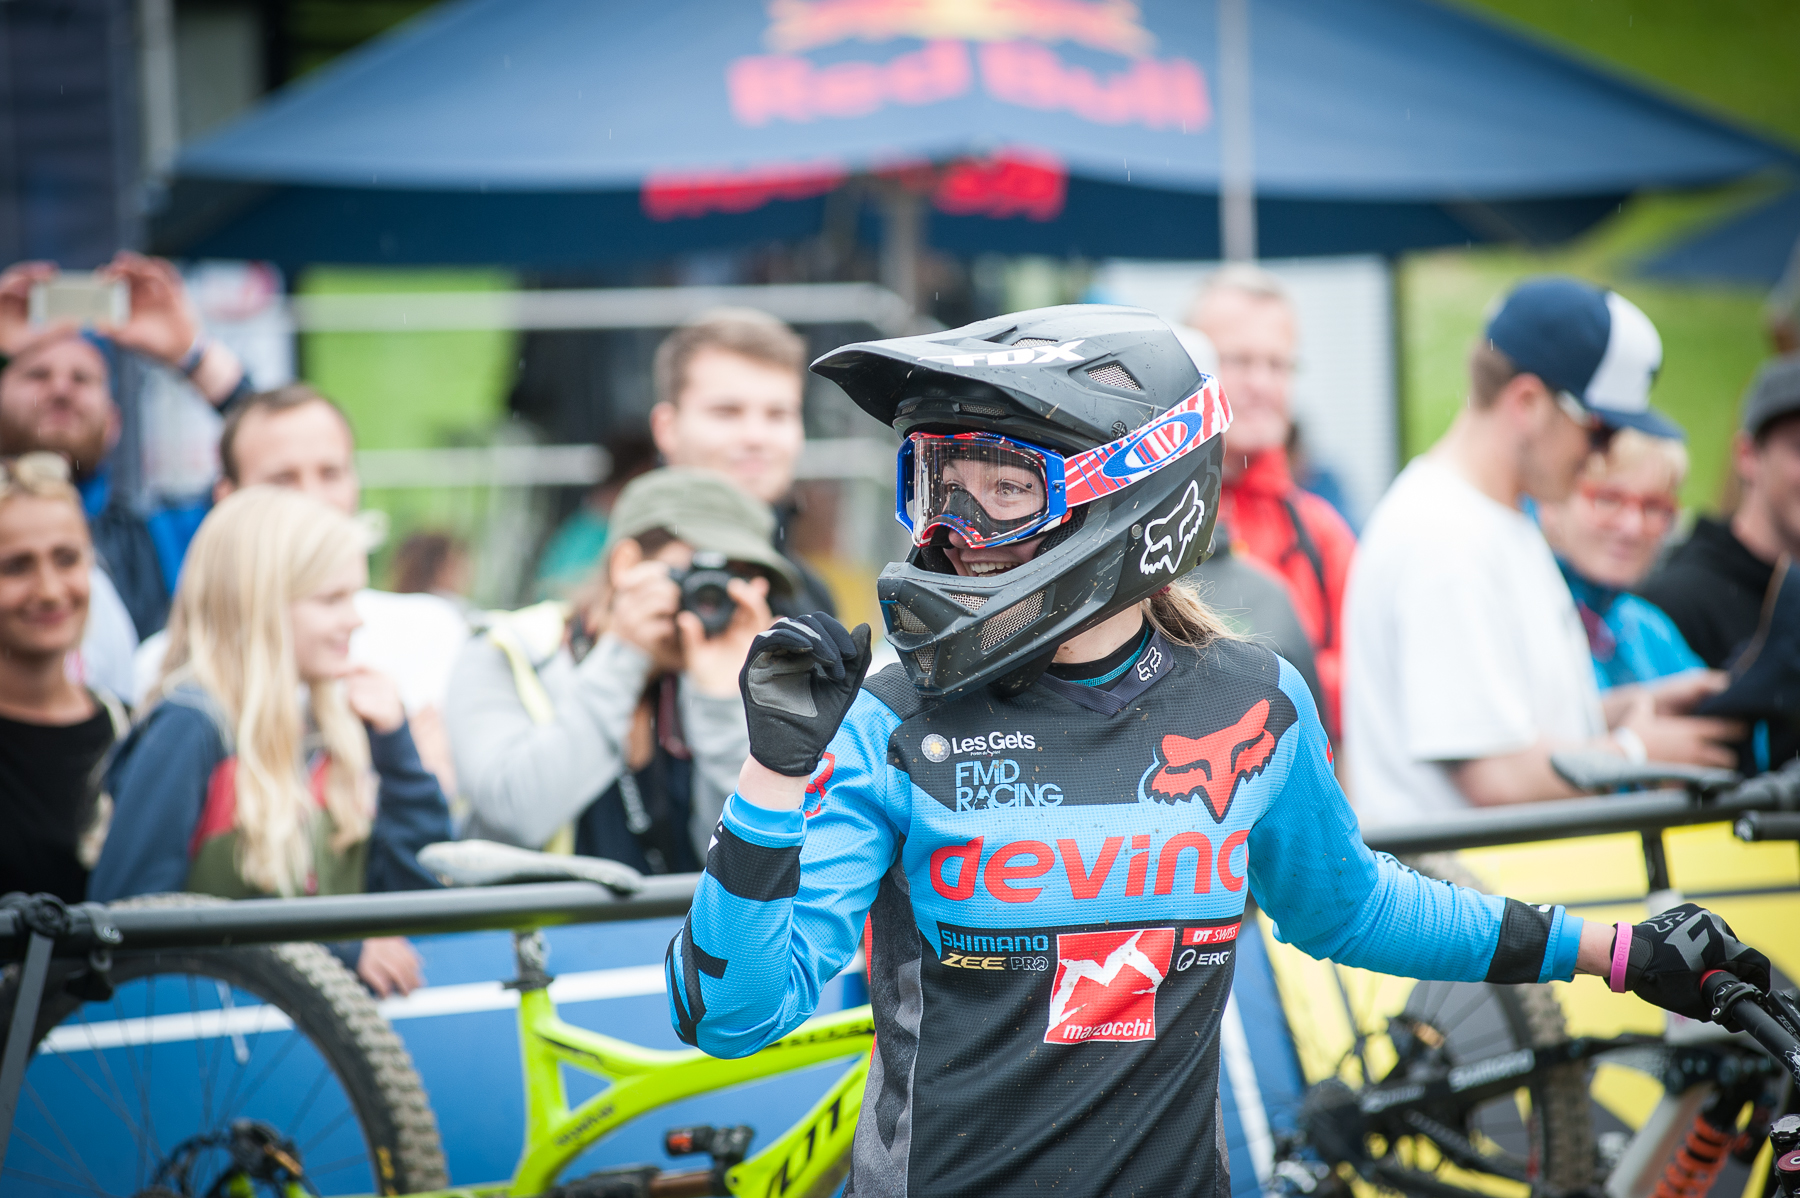 World Cup Leogang 2015 Tahnee Seagrave